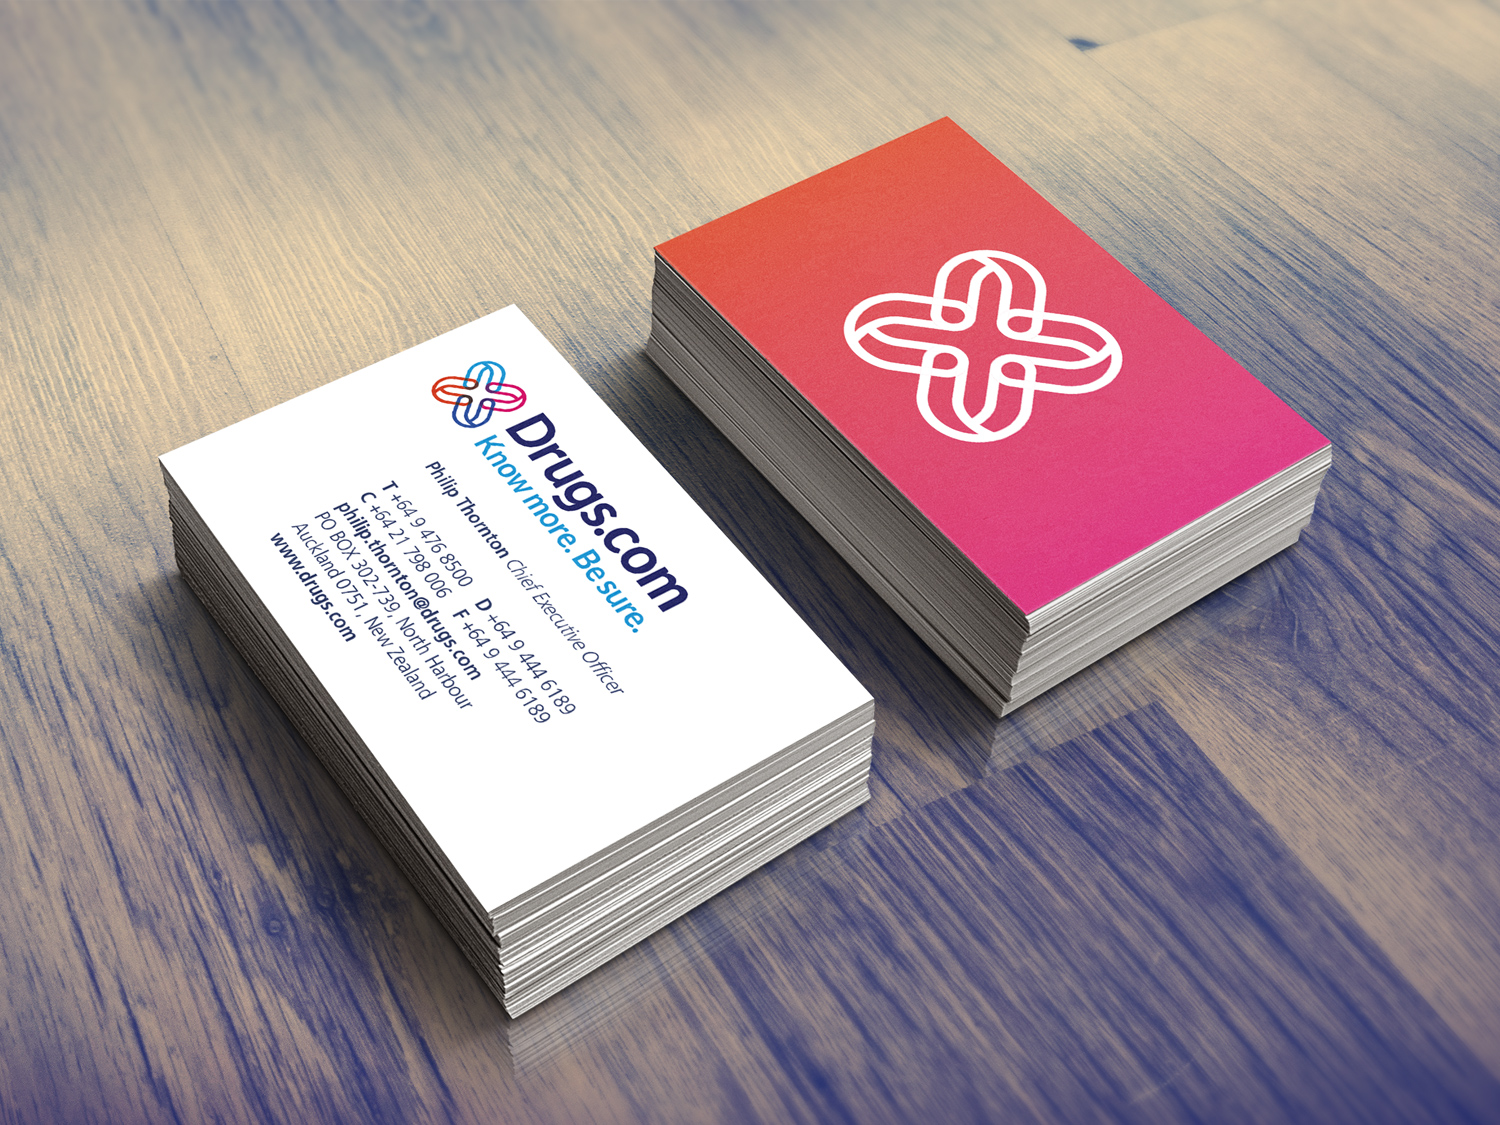 Image of Drugs.com business cards